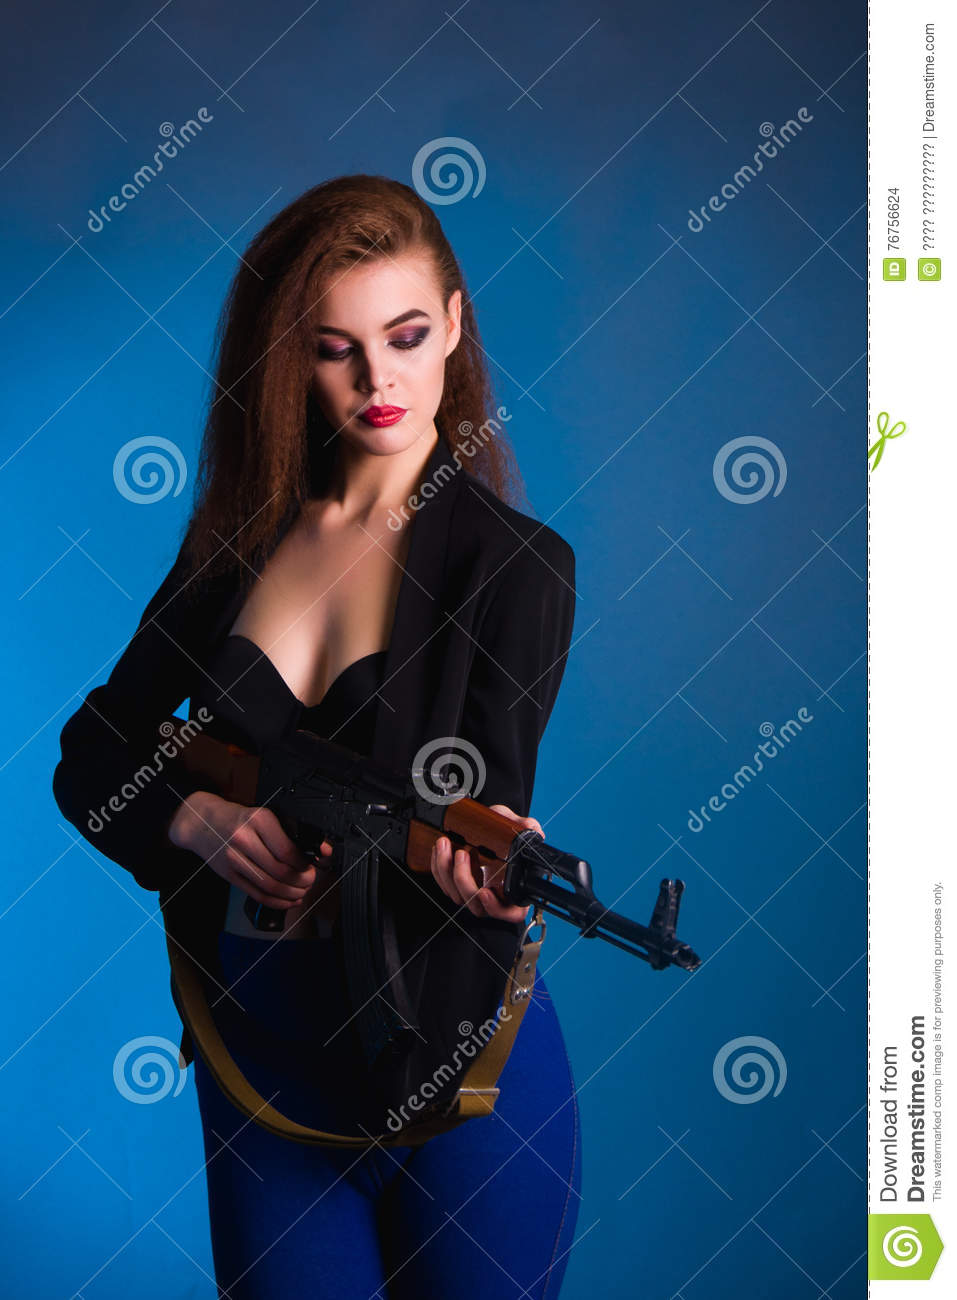 Girl fashion photography in the studio with a gun is dangerous